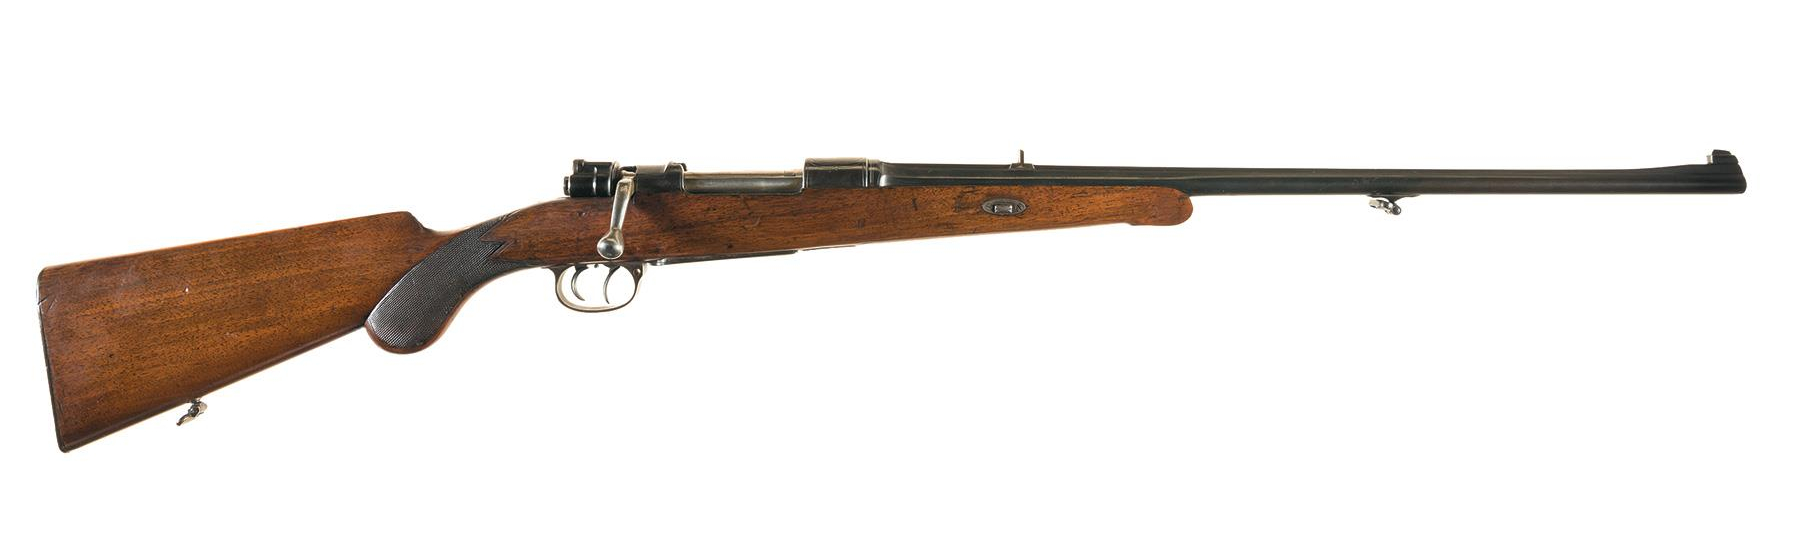 The H. Burgsmuller & Sohne 8mm is a classic European sporting rifle in the German/Austrian style.